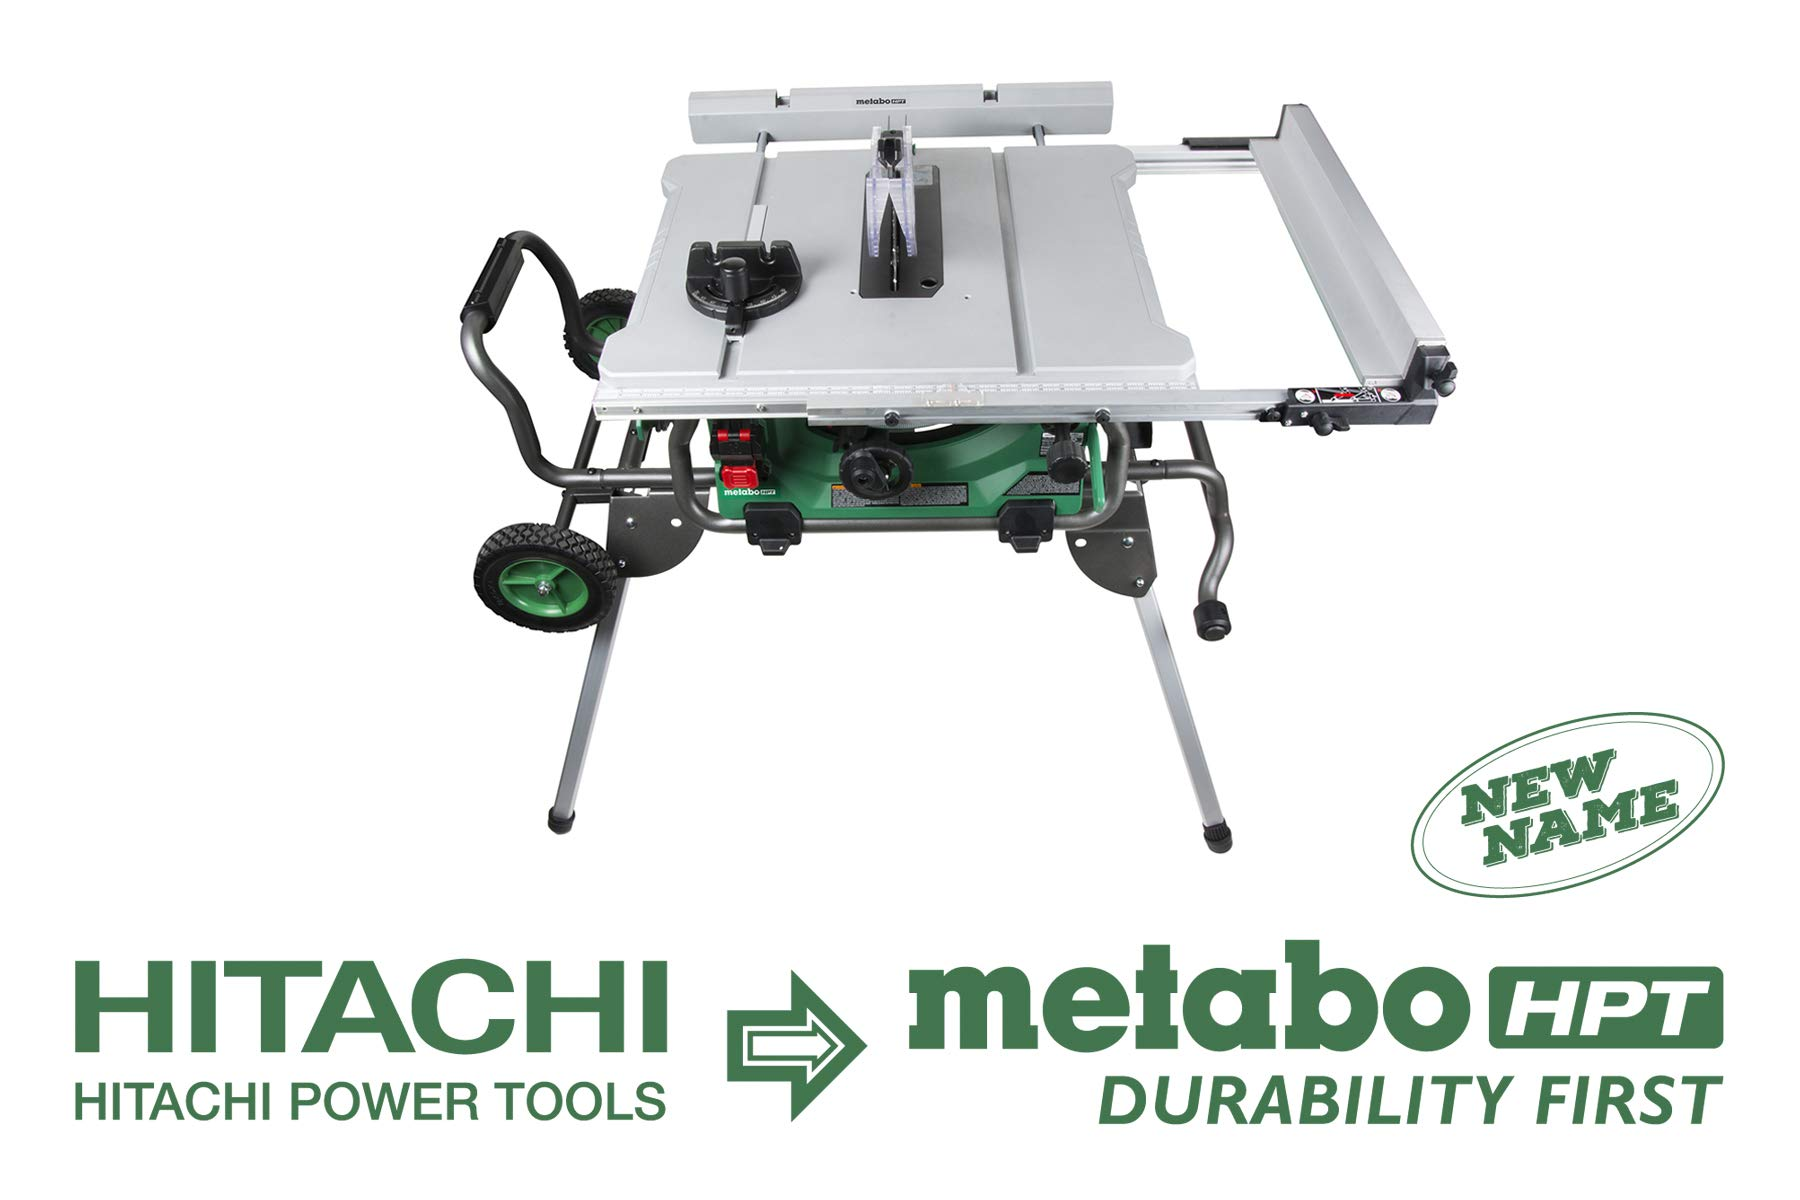 Metabo HPT C10RJ 10'' Jobsite Table Saw, Class-Leading 35'' Rip Capacity, Fold & Roll Stand, 8 x 13/16'' Dado Capacity, Portable & Lightweight, 2-Year Warranty by Metabo HPT